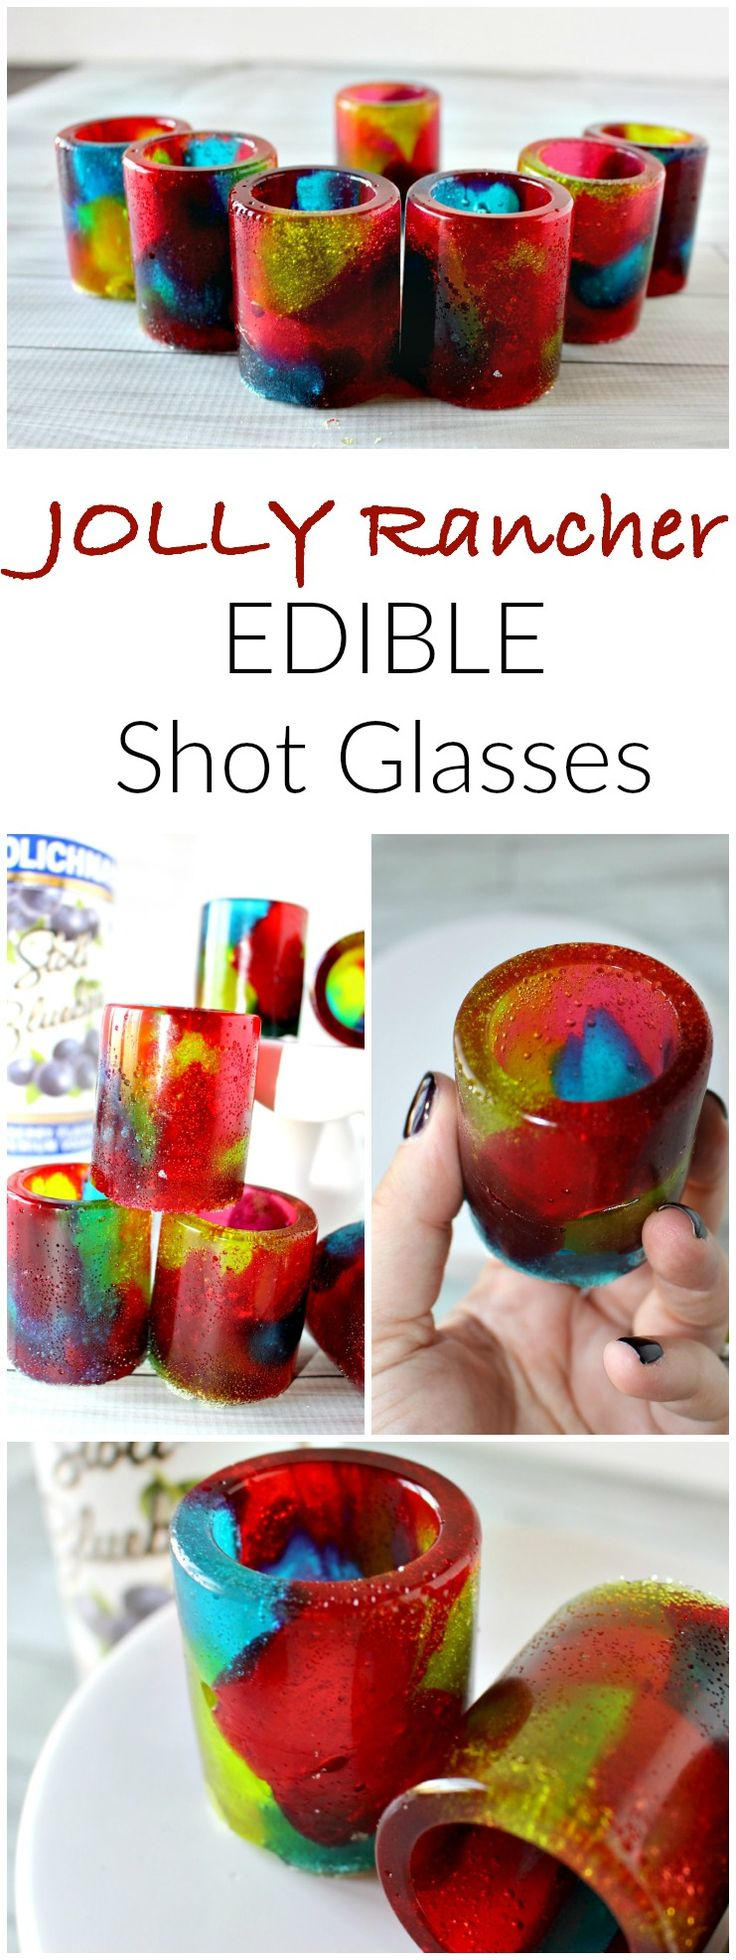 Jolly Rancher Edible Shot Glasses by Princess Pinky GIrl AND Other amazing PARTY HACKS!